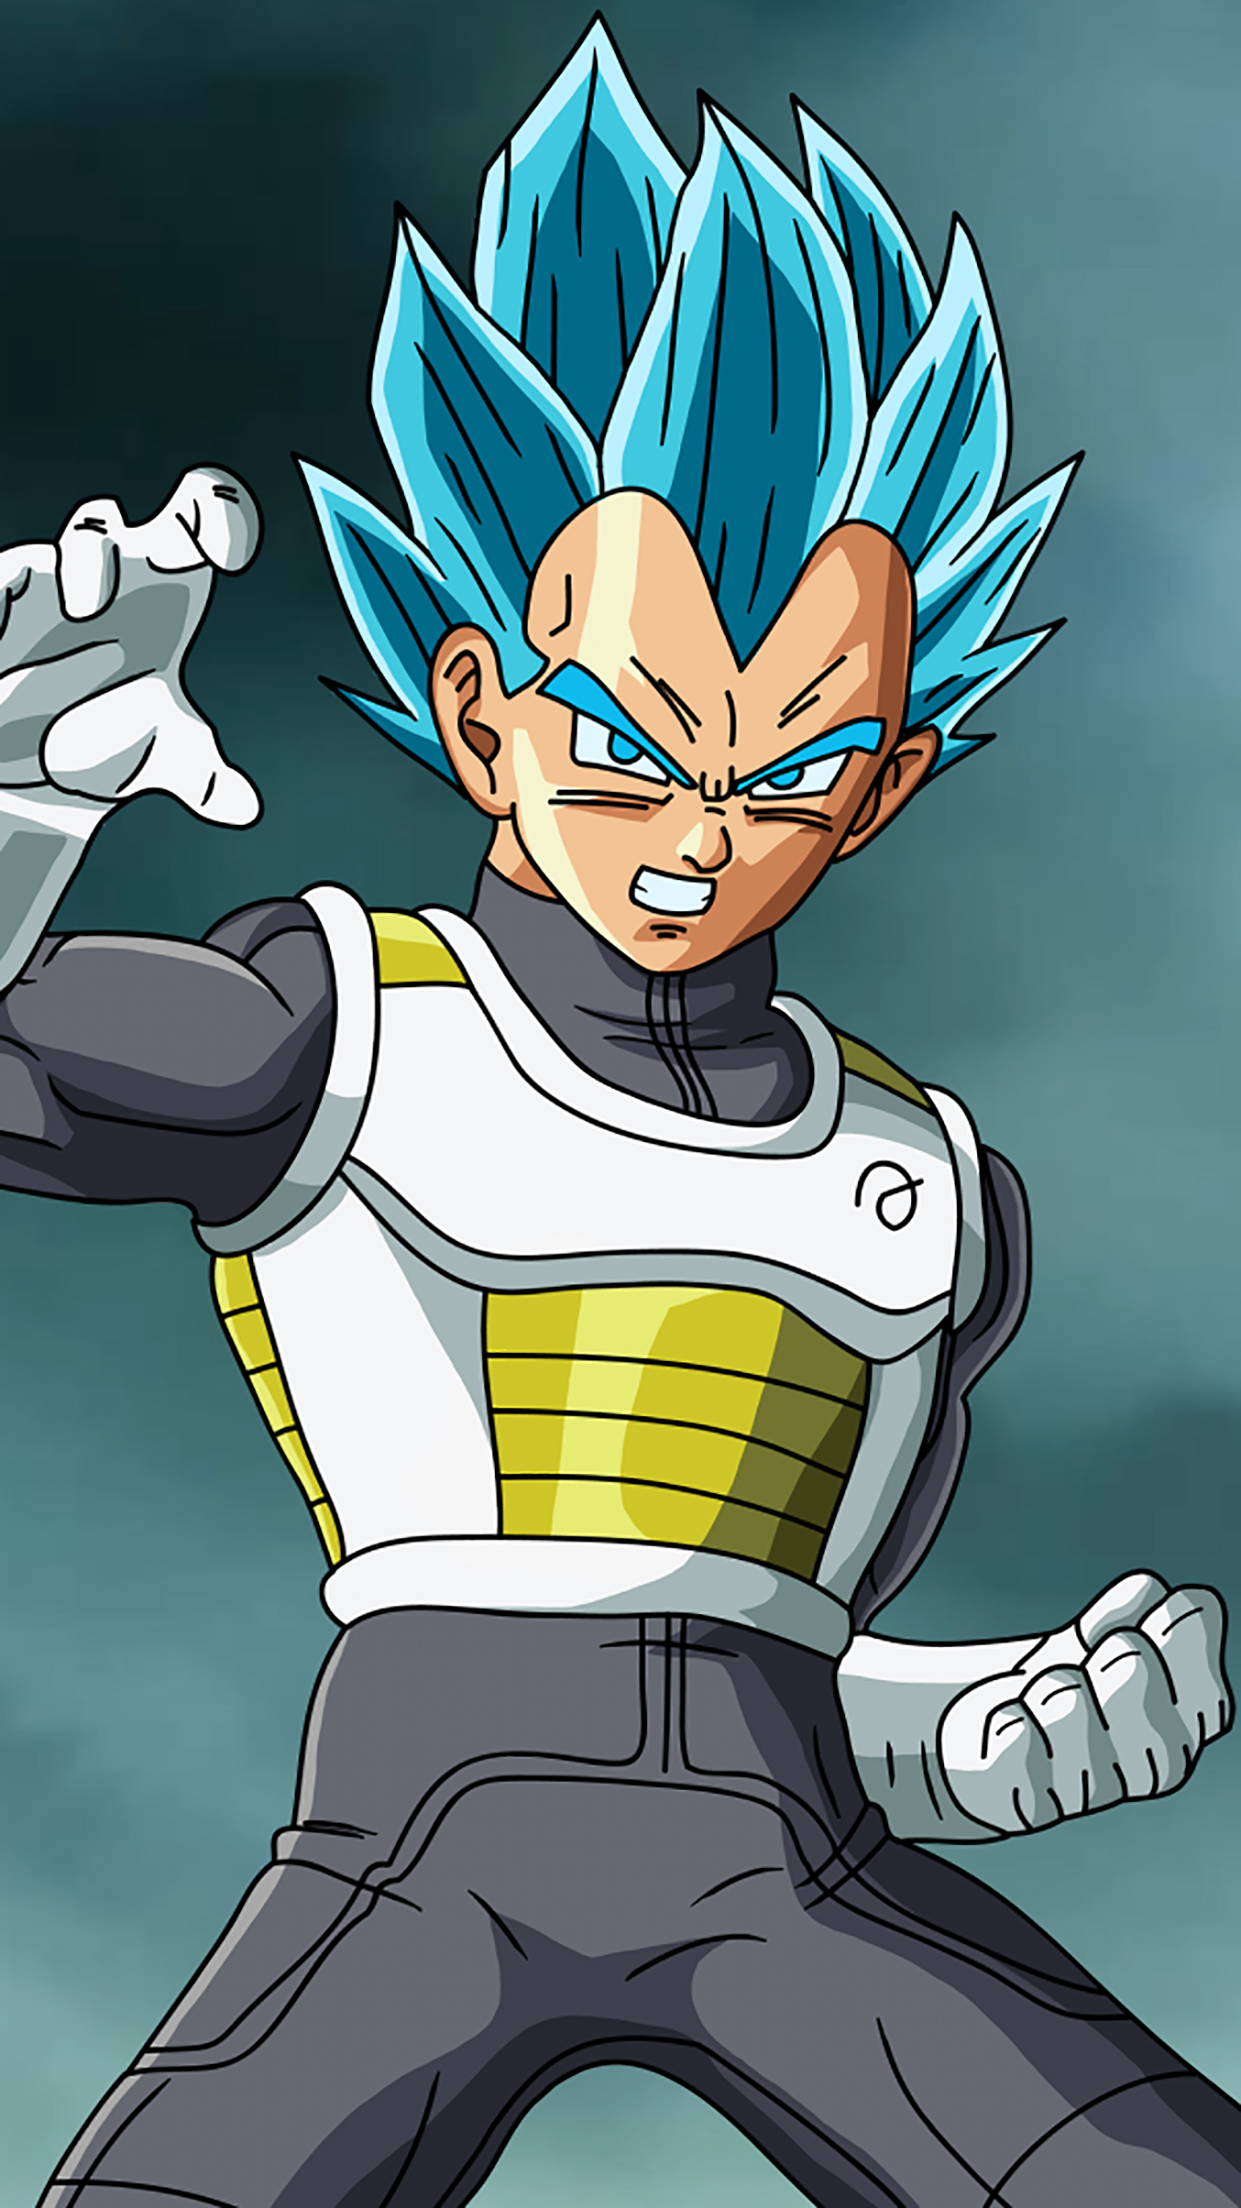 Special Vegeta Standig And Mad 3Wallpapers iPhone Parallax Special Vegeta : Standing and Mad